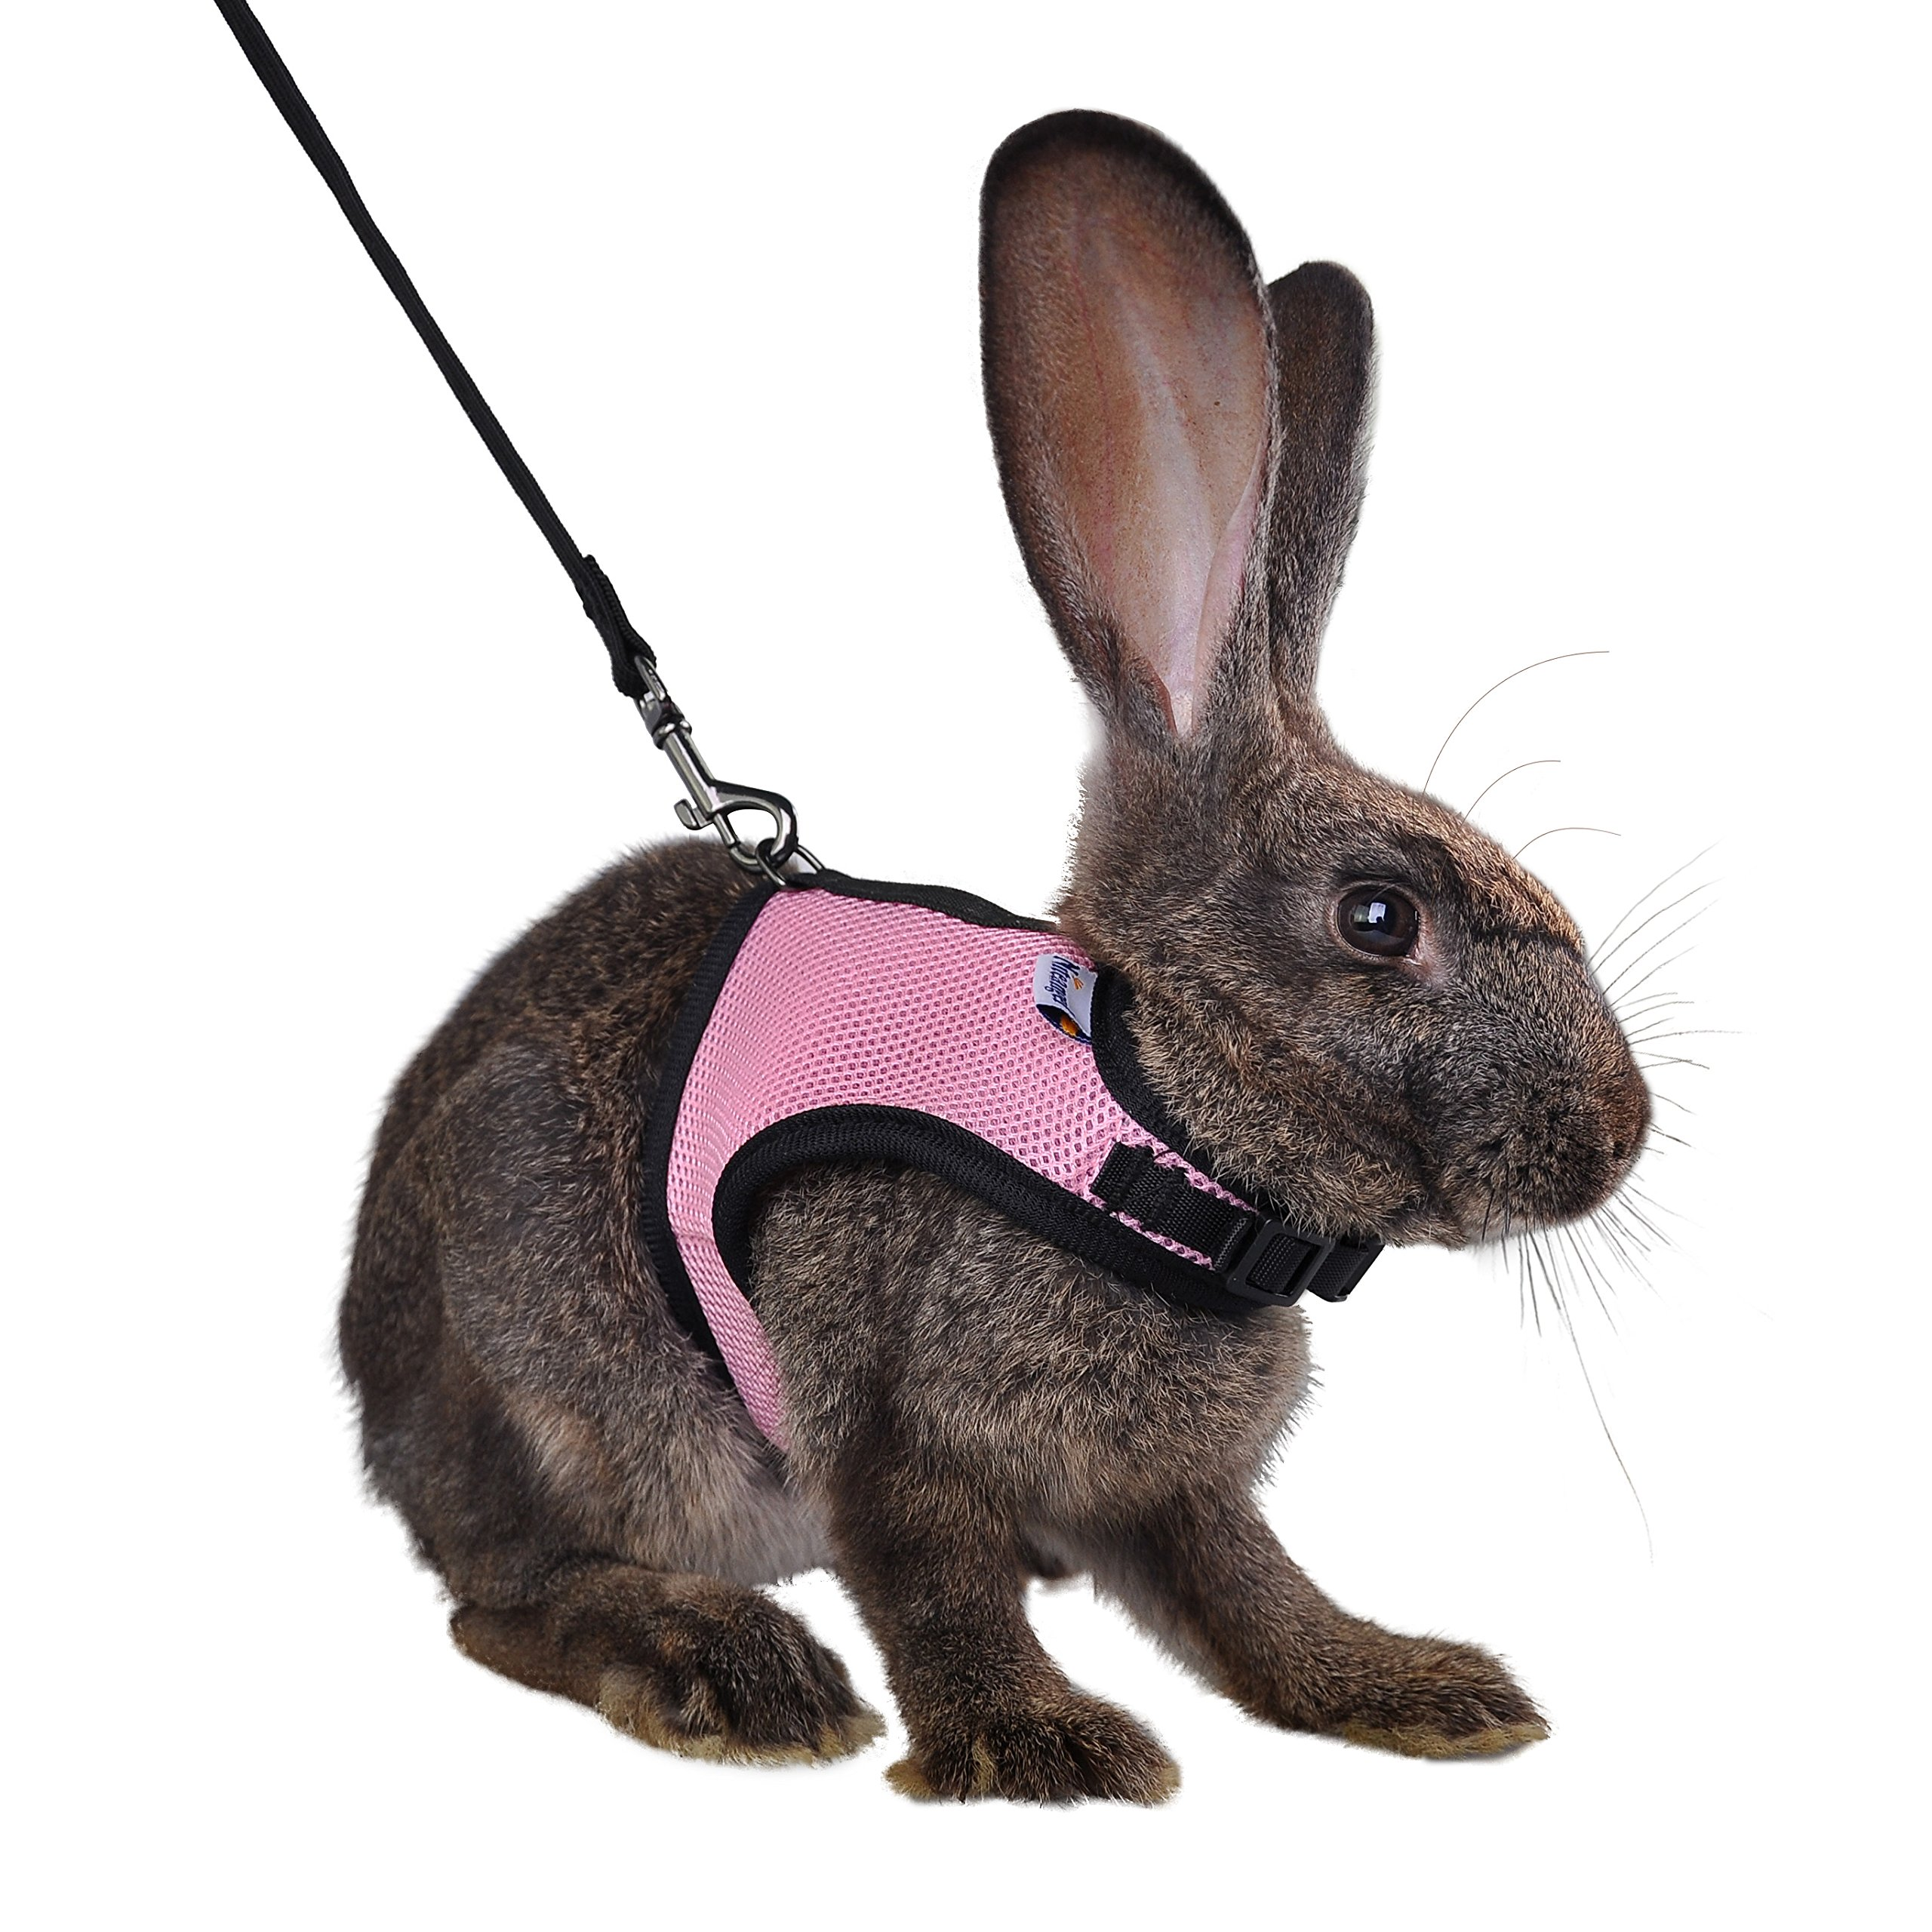 Niteangel Adjustable Soft Harness with Elastic Leash for Rabbits Pink M